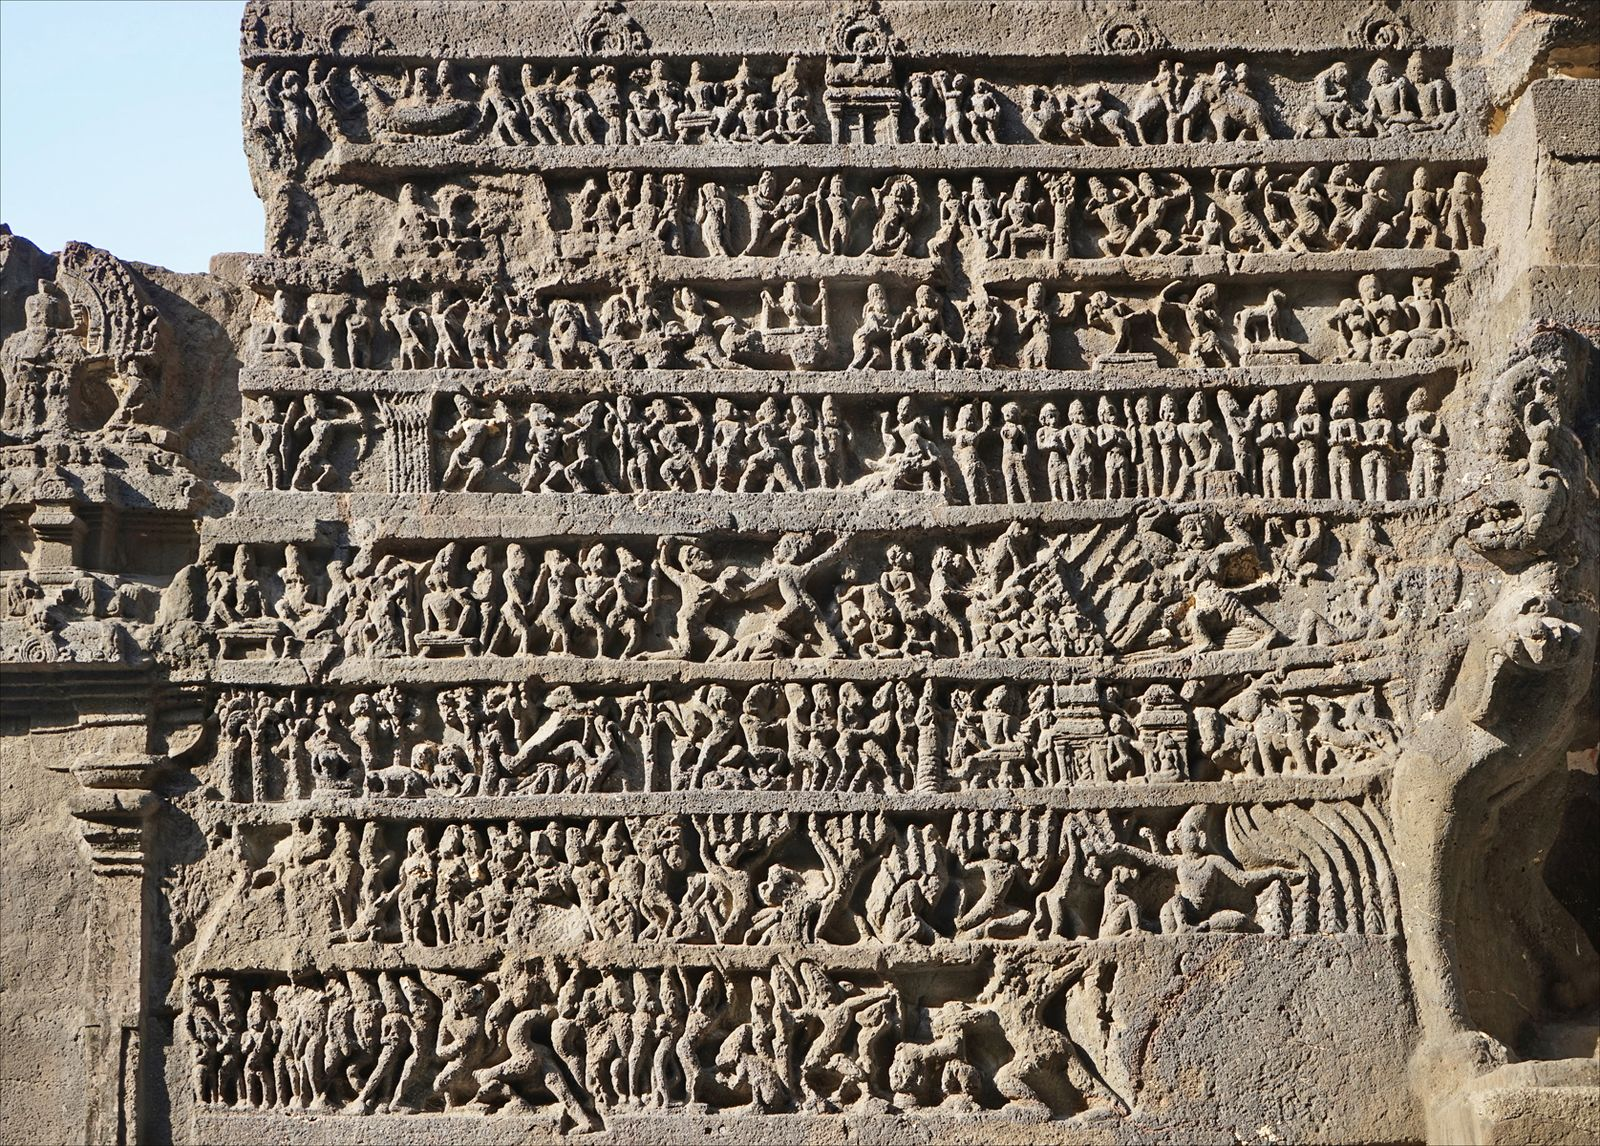 Ramayana Panel in Ellora, 600-1000 Century. Photo Credit: Sarah Welch/Wikimedia Commons [Licensed under CC-BY-2.0]